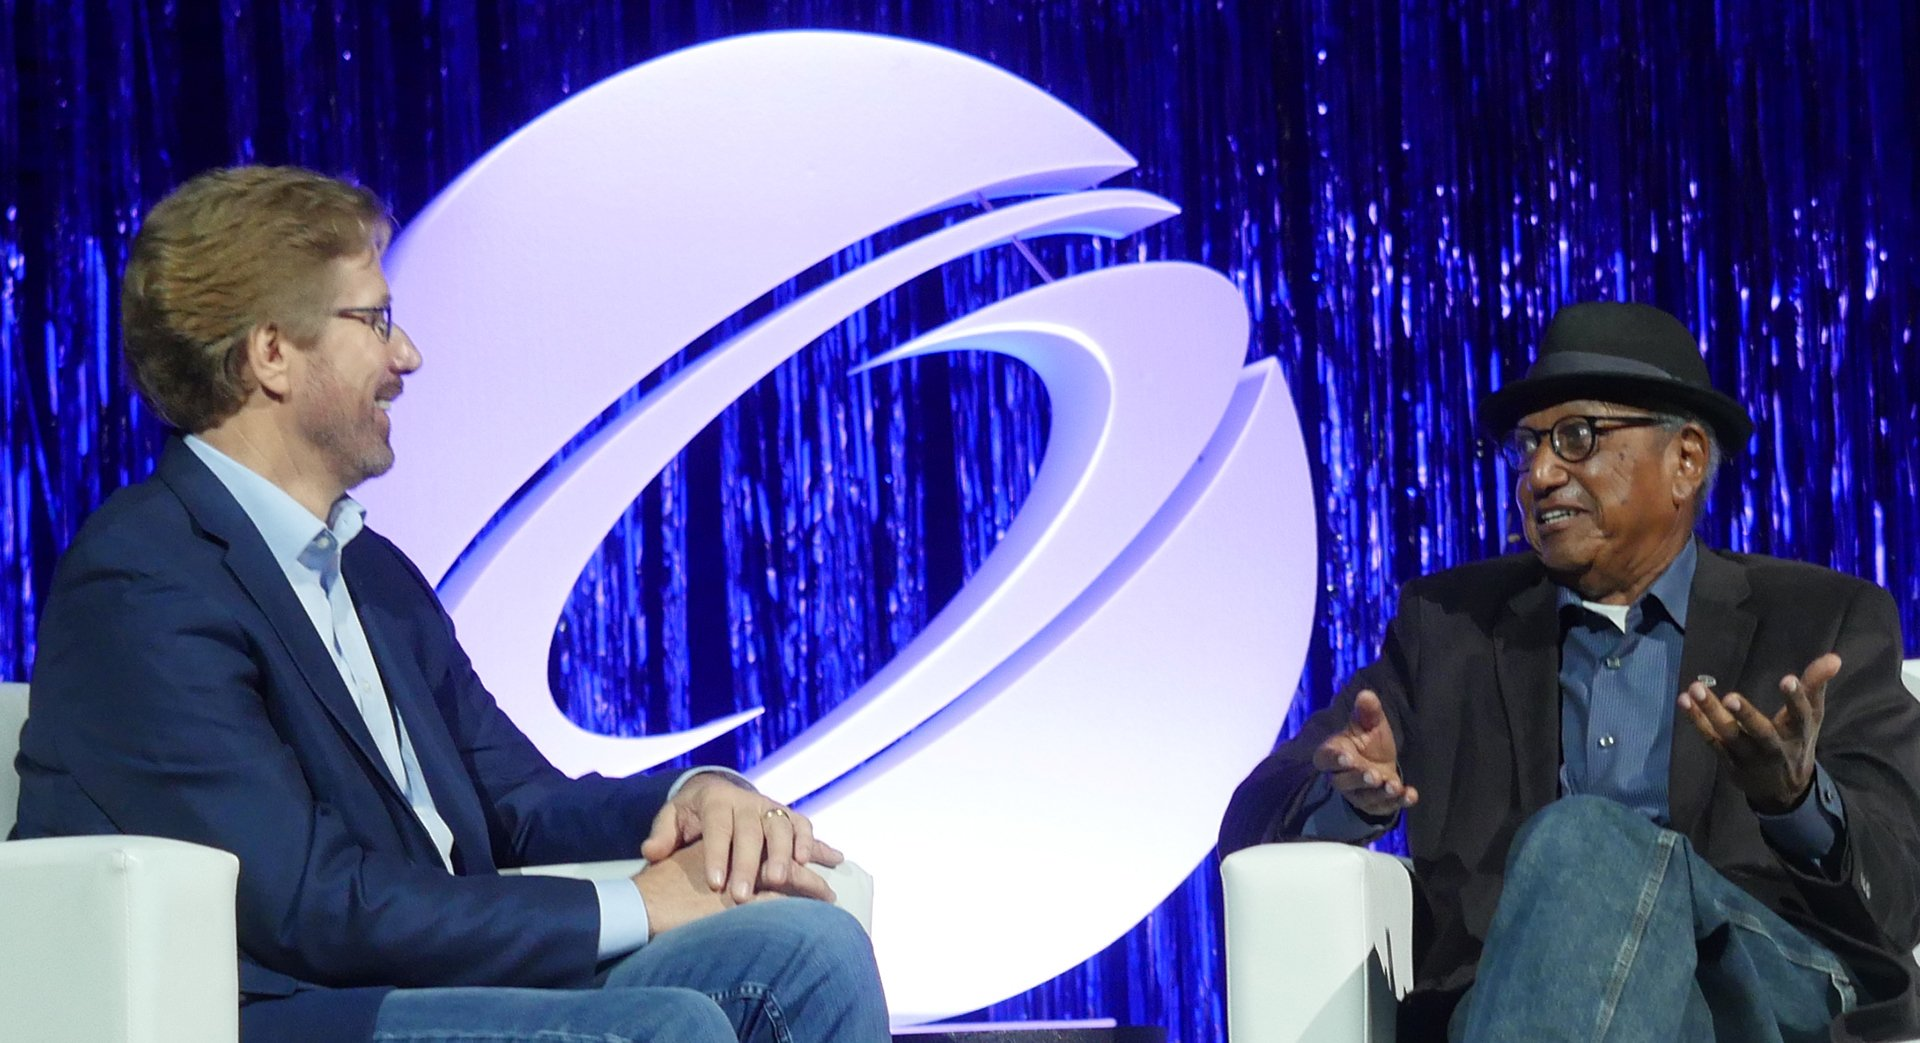 Steve Waskul and Floyd Norman during their fireside chat keynote at SIGGRAPH 2017